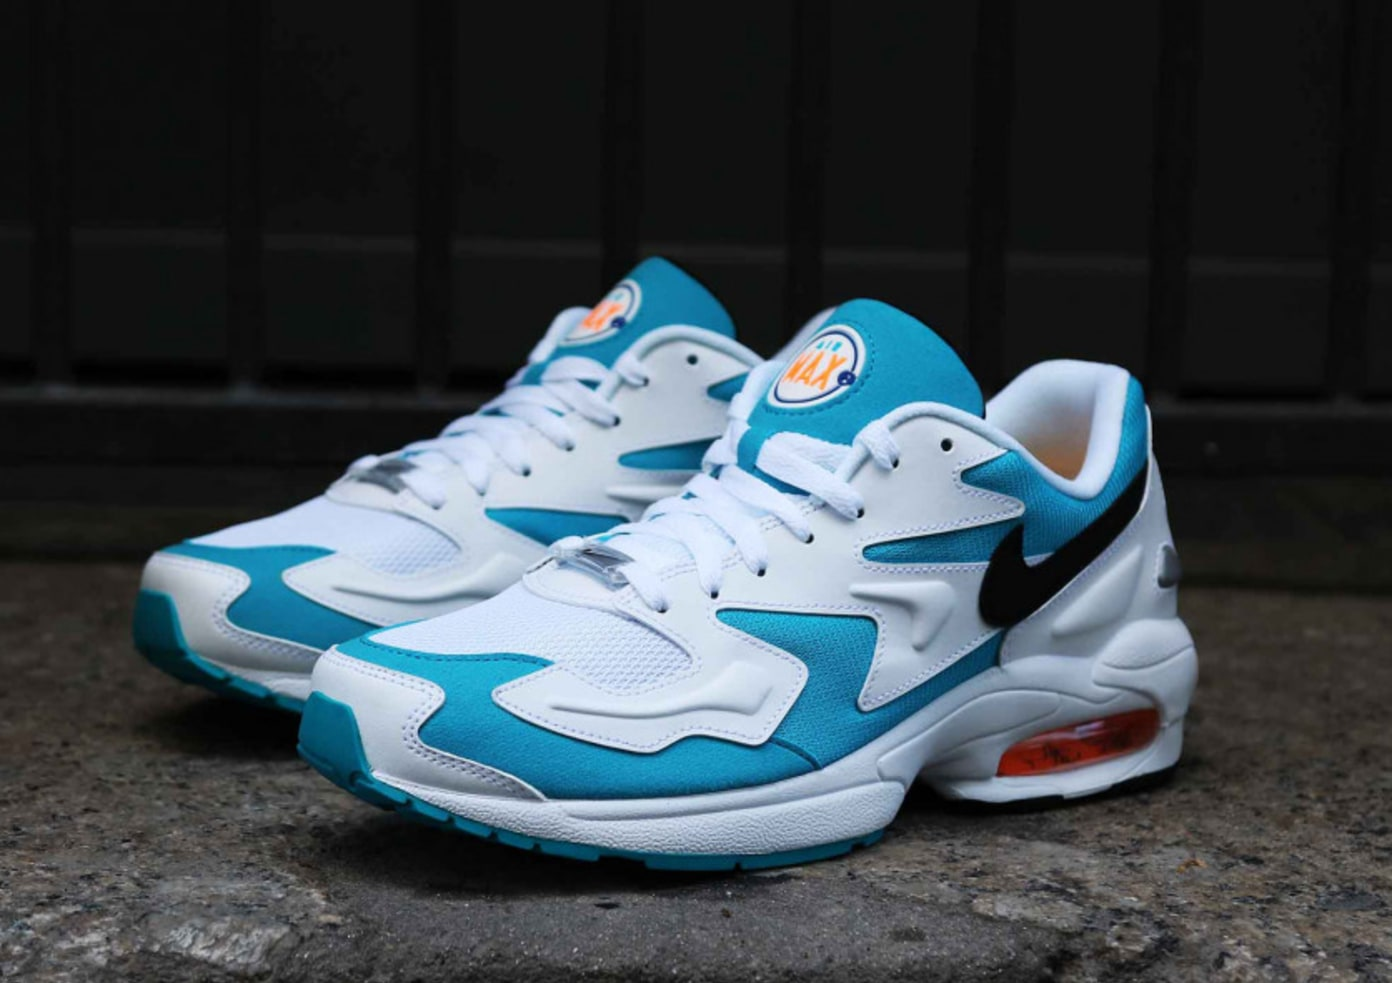 Nike Air Max 2 Light OG - Blue Lagoon